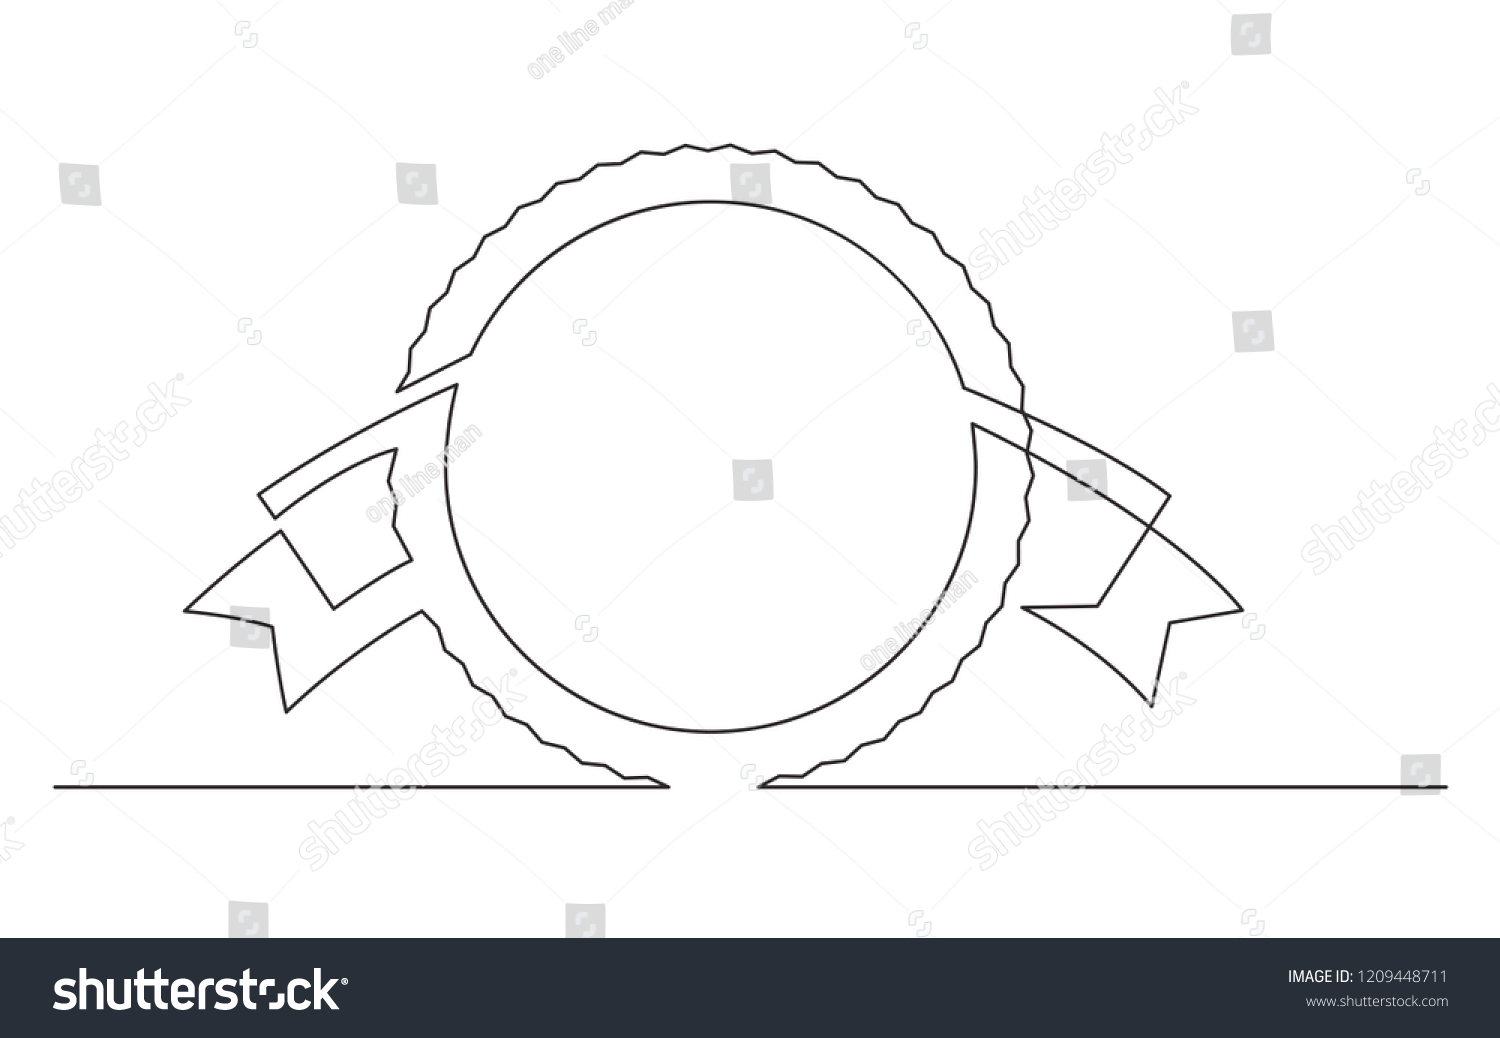 hight resolution of continuous line drawing of circle and ribbon label